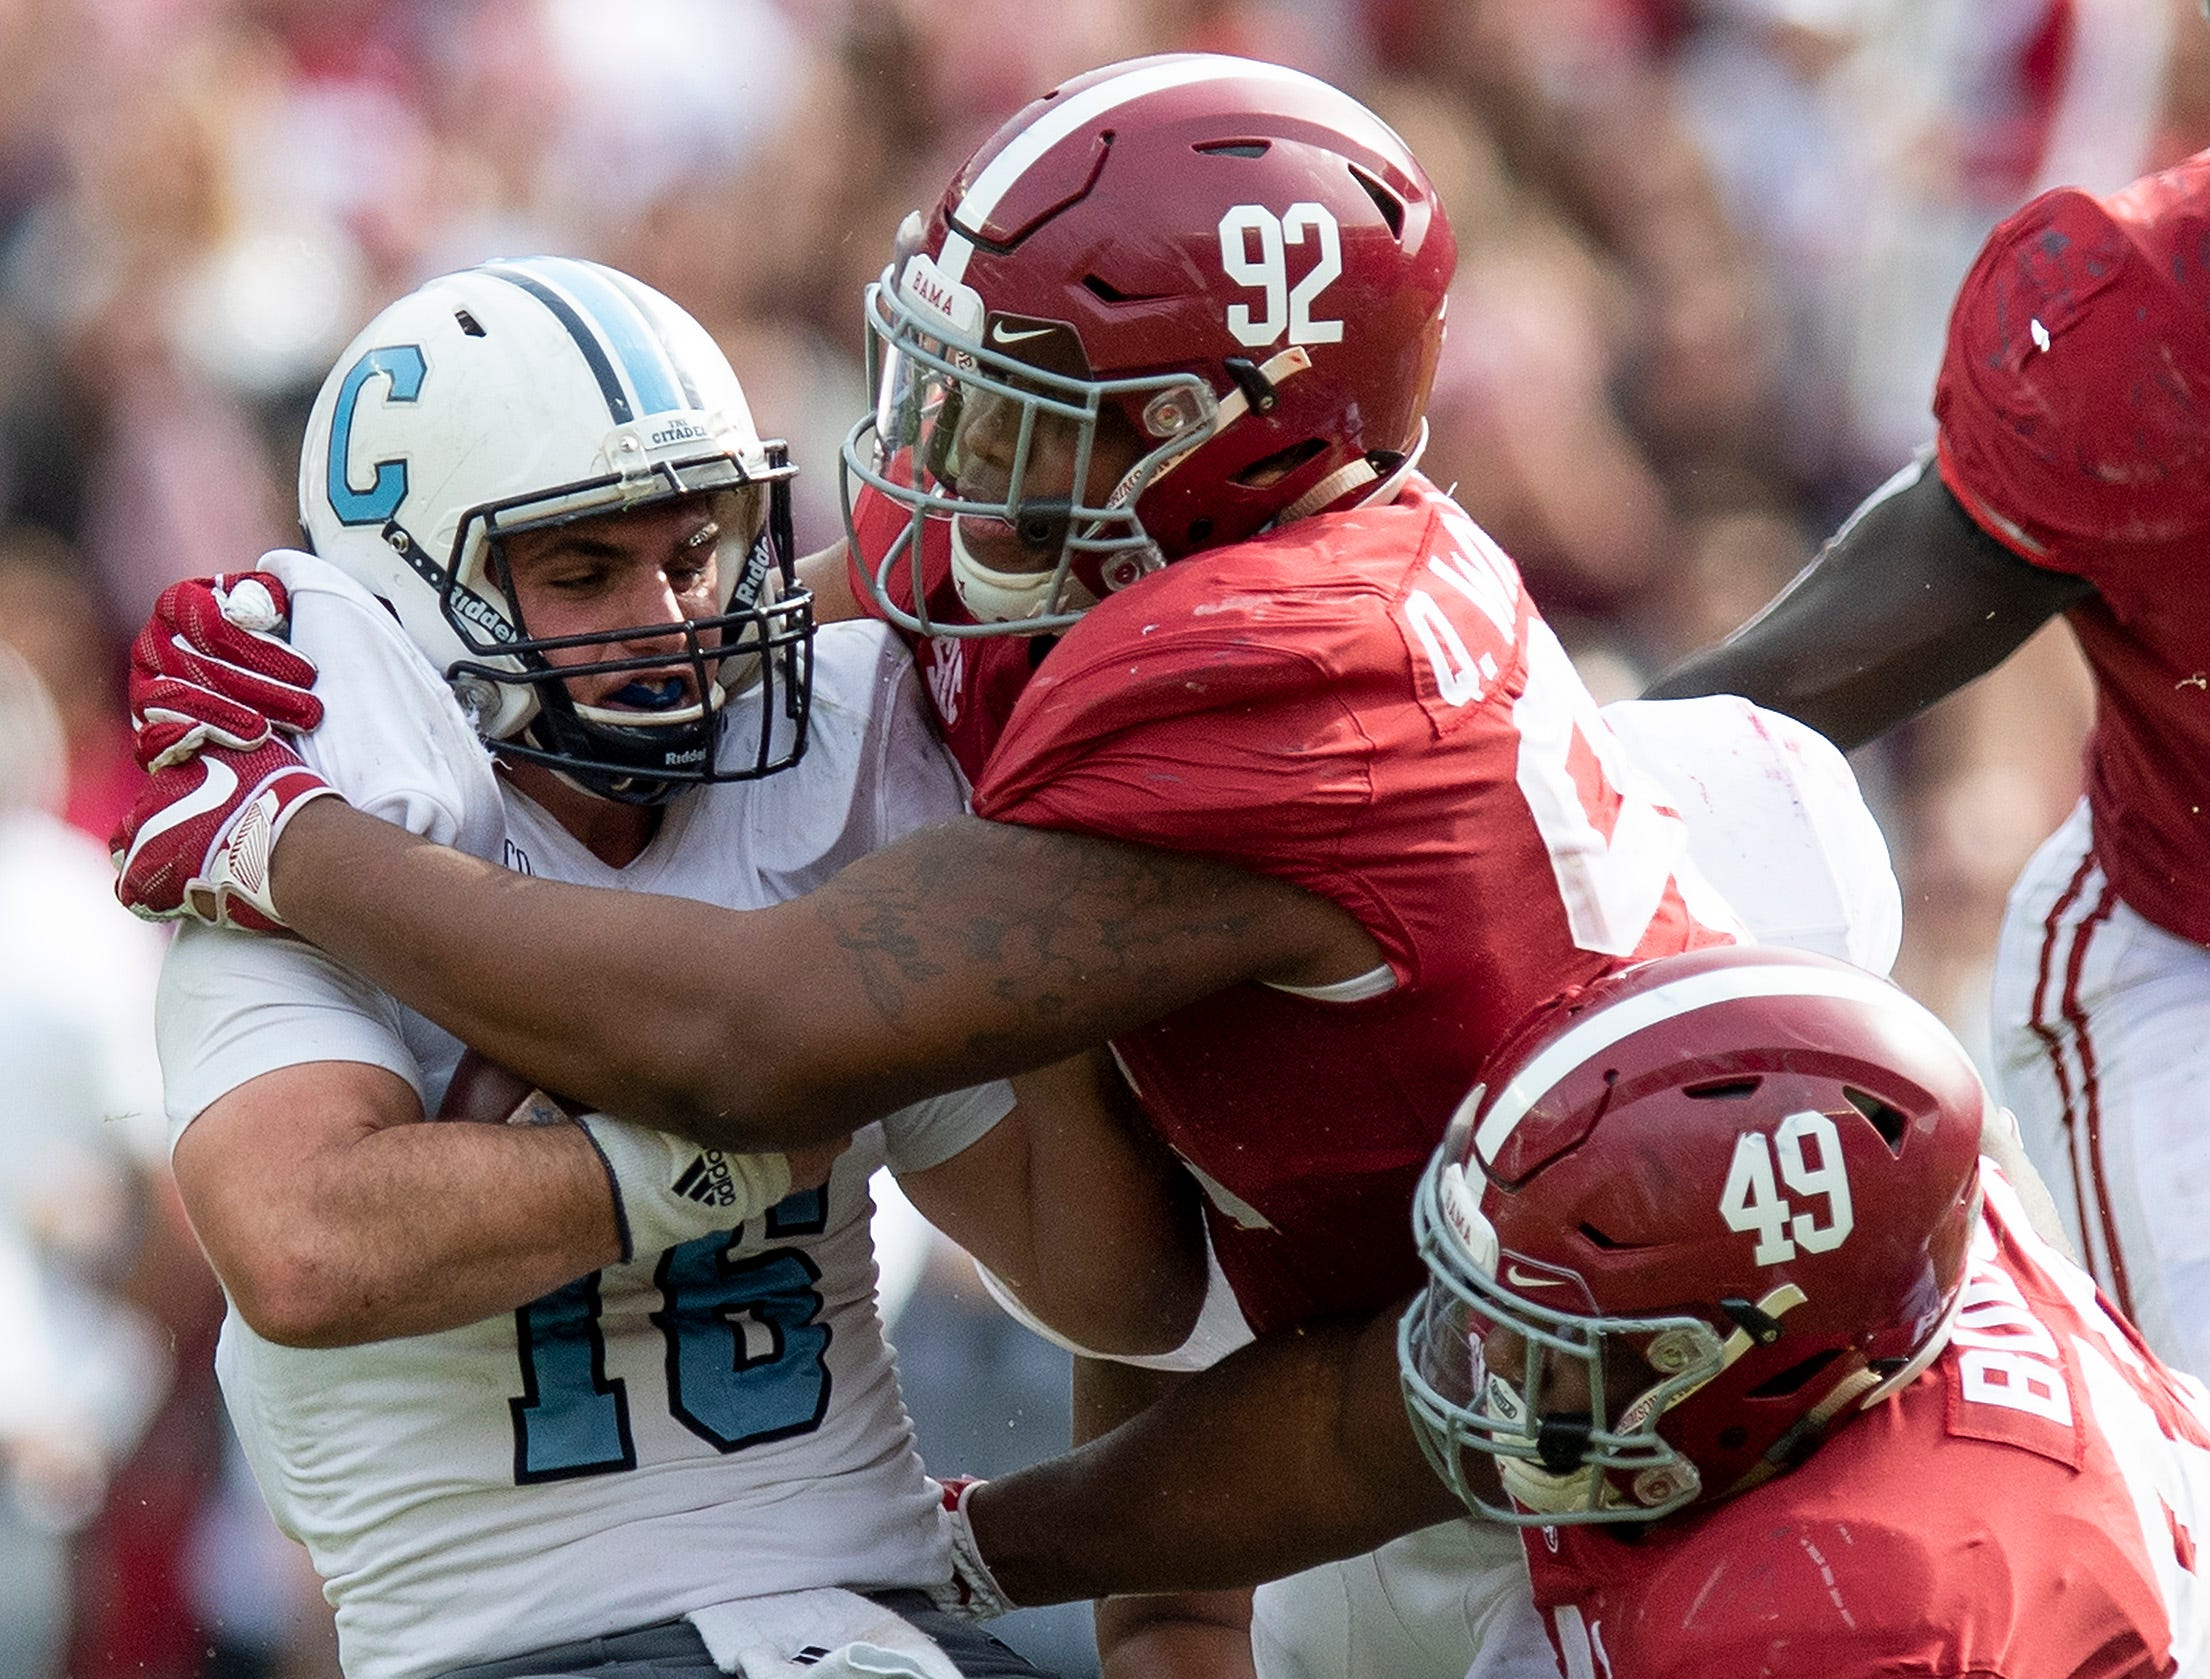 Alabama defensive lineman Quinnen Williams (92) and defensive lineman Isaiah Buggs (49) stop Citadel quarterback Brandon Rainey (16) in second half action at Bryant-Denny Stadium in Tuscaloosa, Ala., on Saturday November 17, 2018.